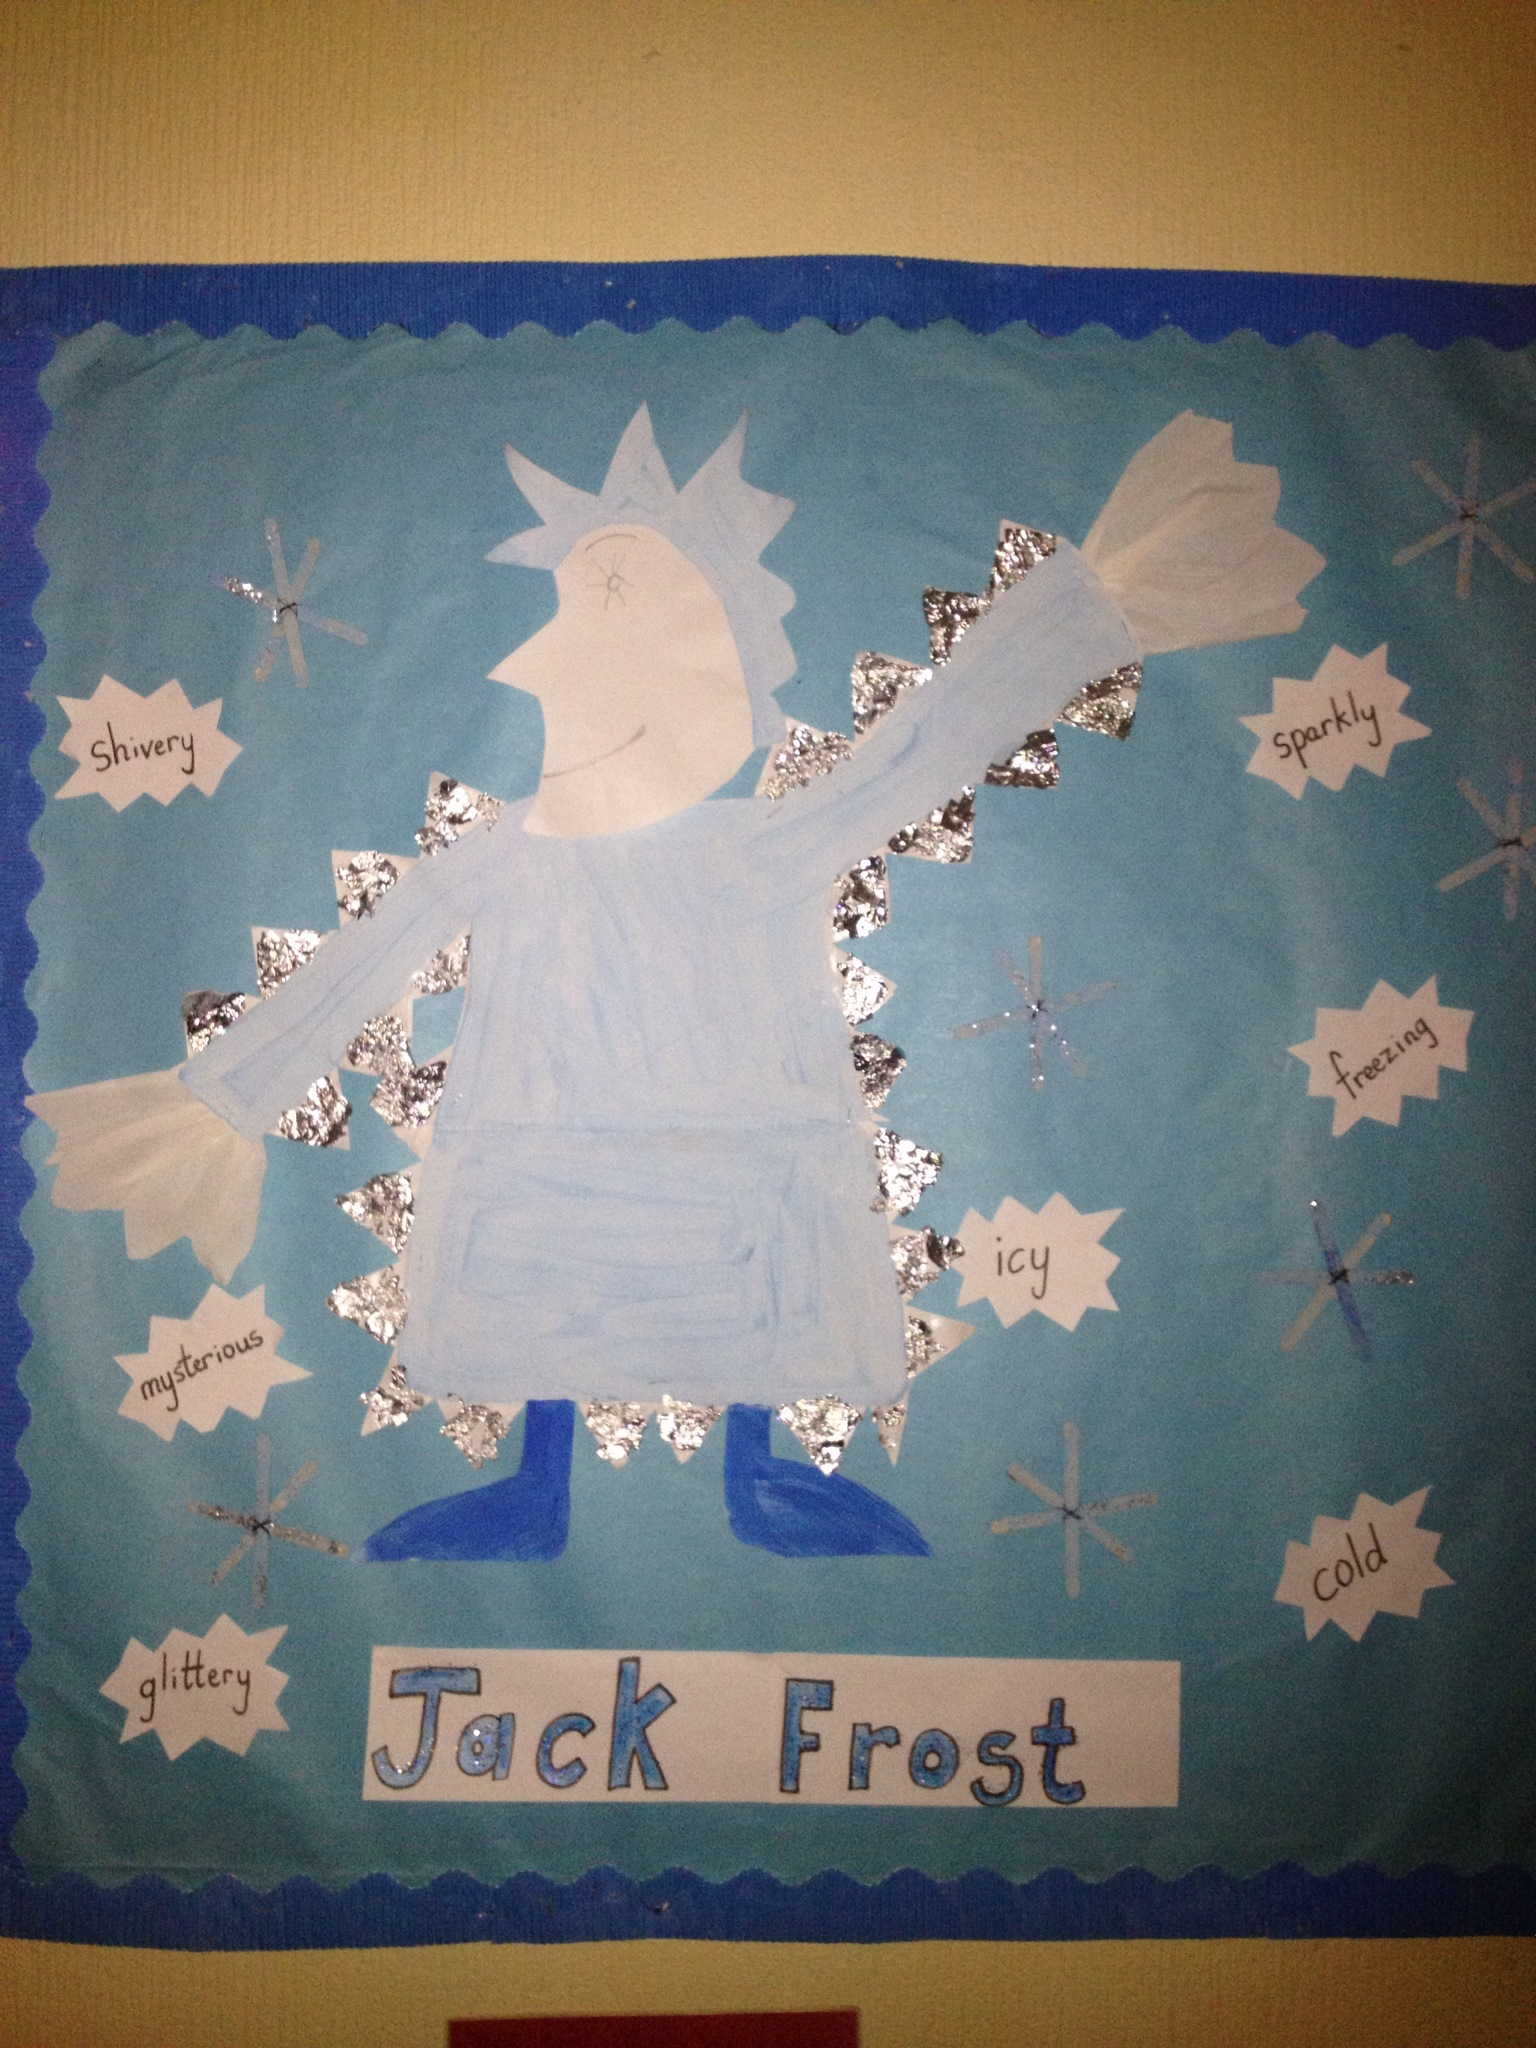 Jack Frost nipping at your nose.